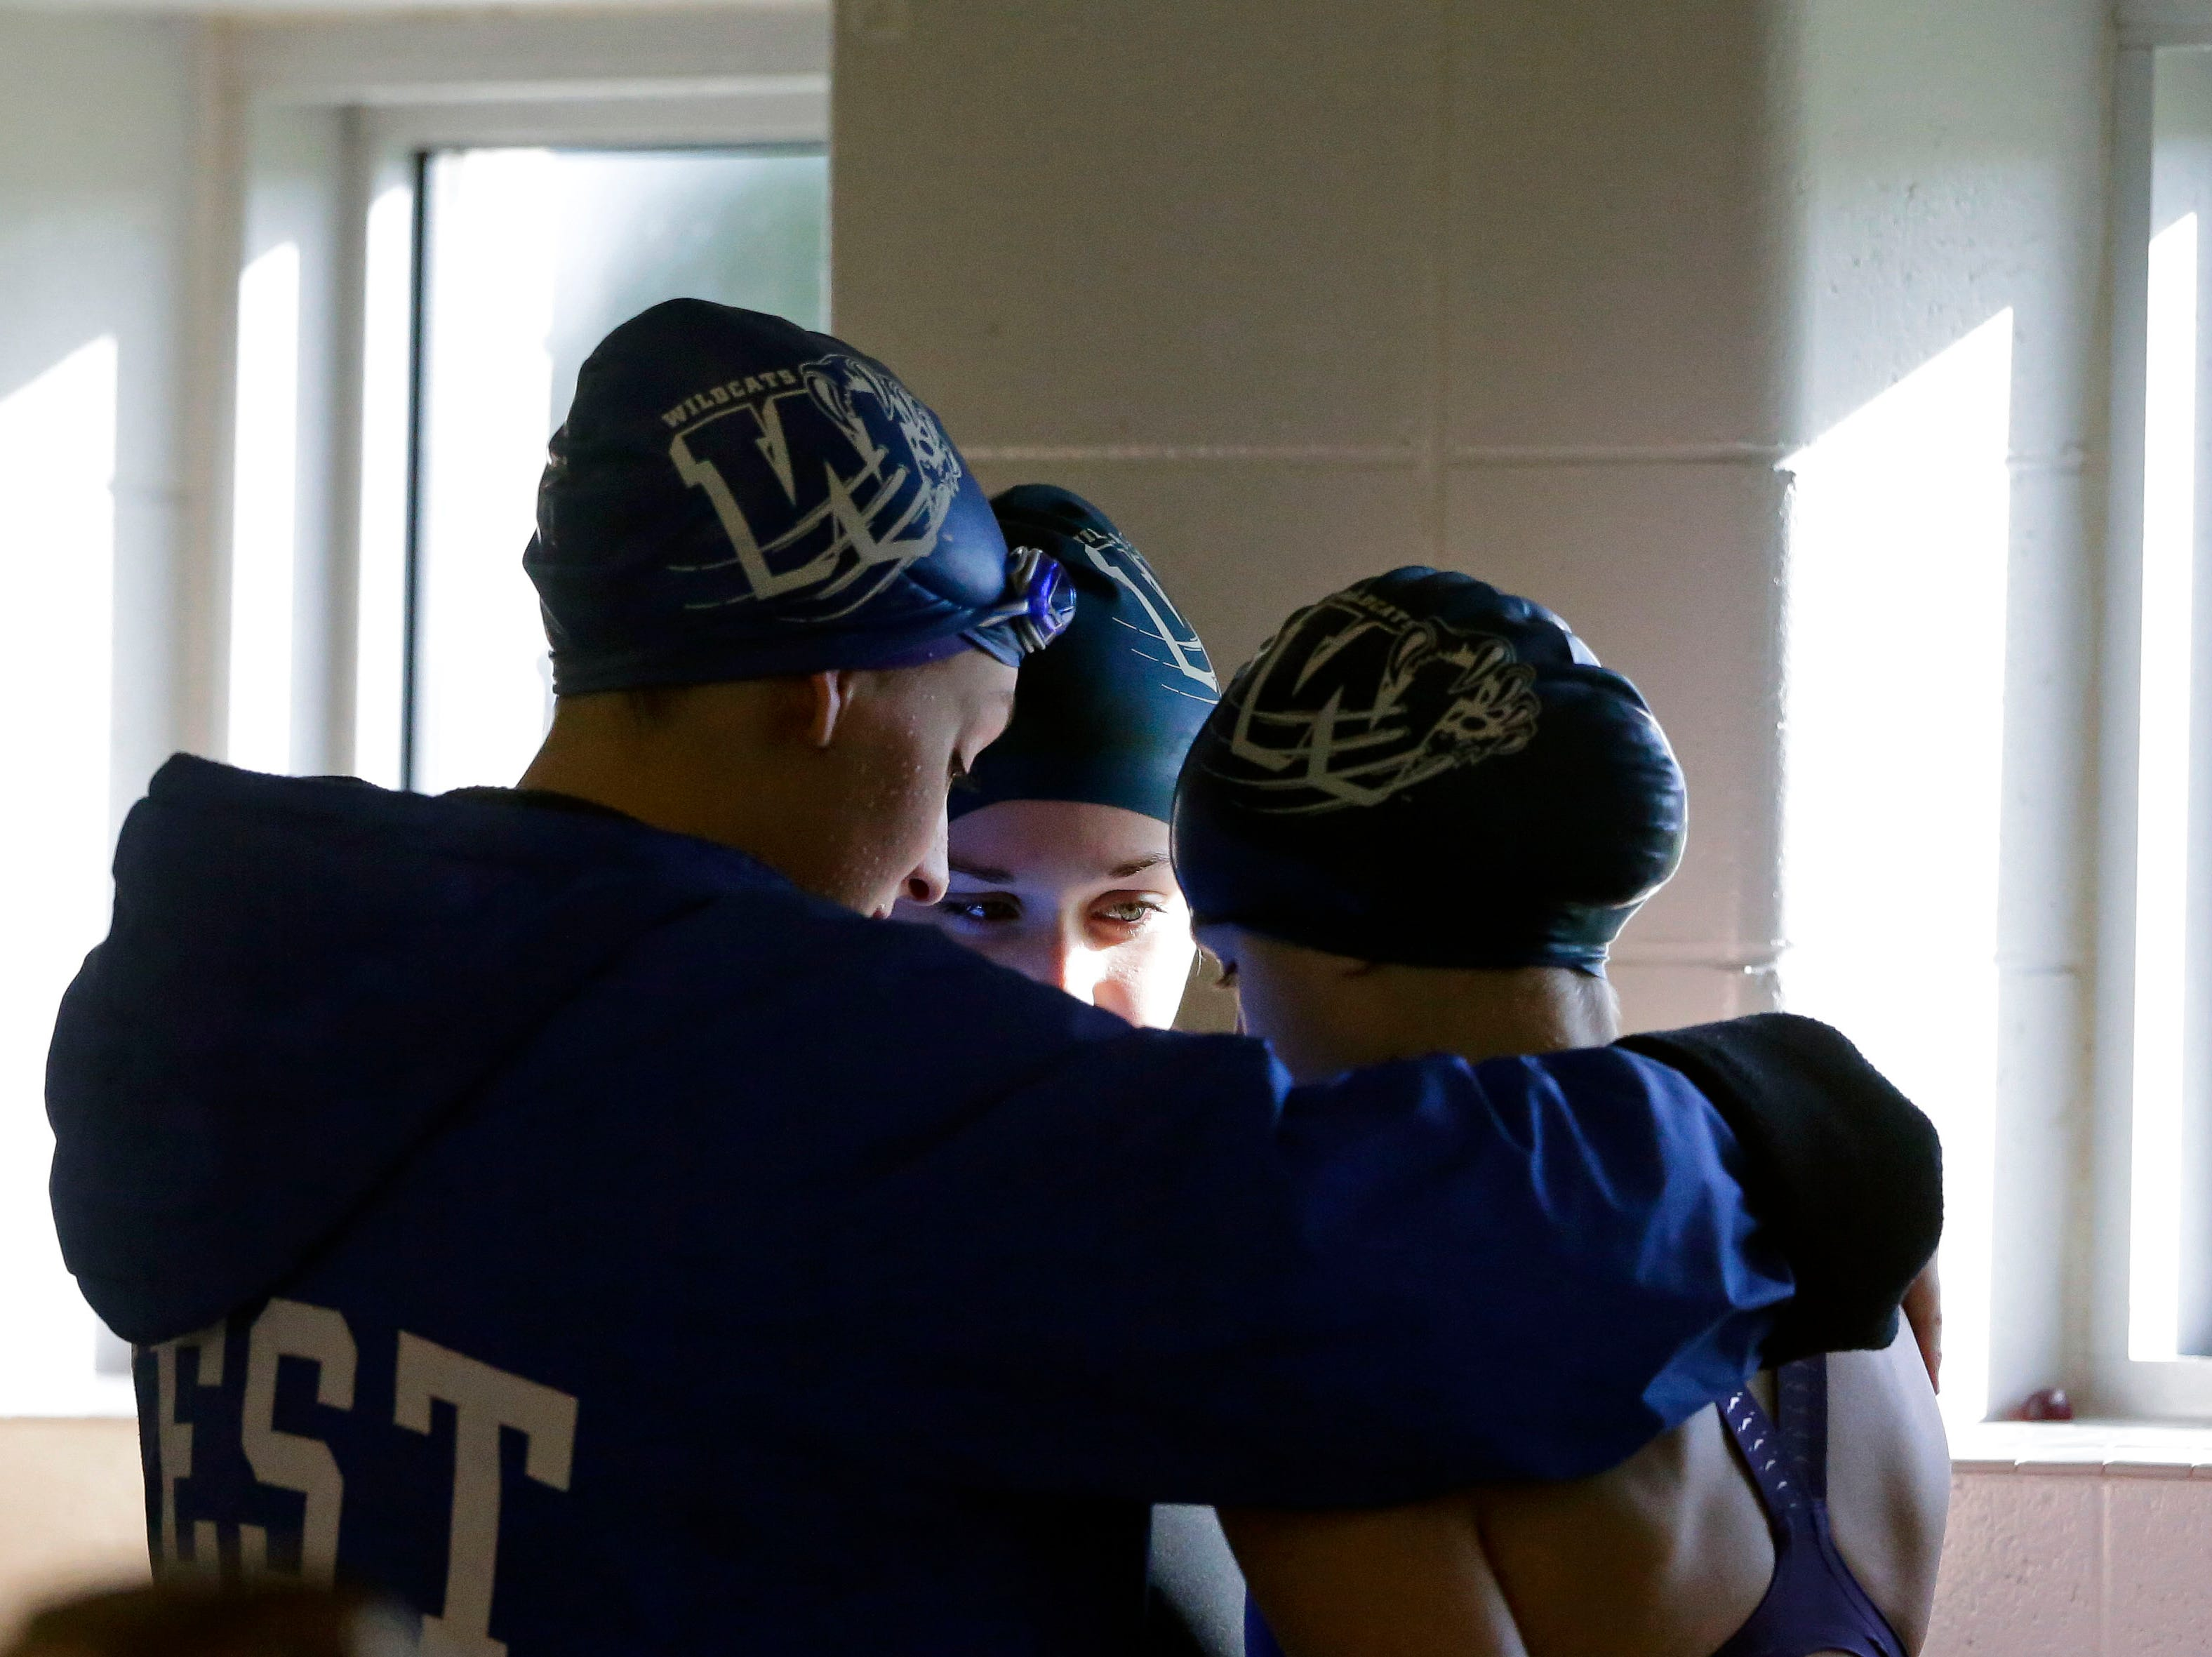 Oshkosh West swimmers huddle during the WIAA Division 1 swimming sectional meet Saturday, November 3, 2018, at Neenah High School in Neenah, Wis. Winners advanced to state.